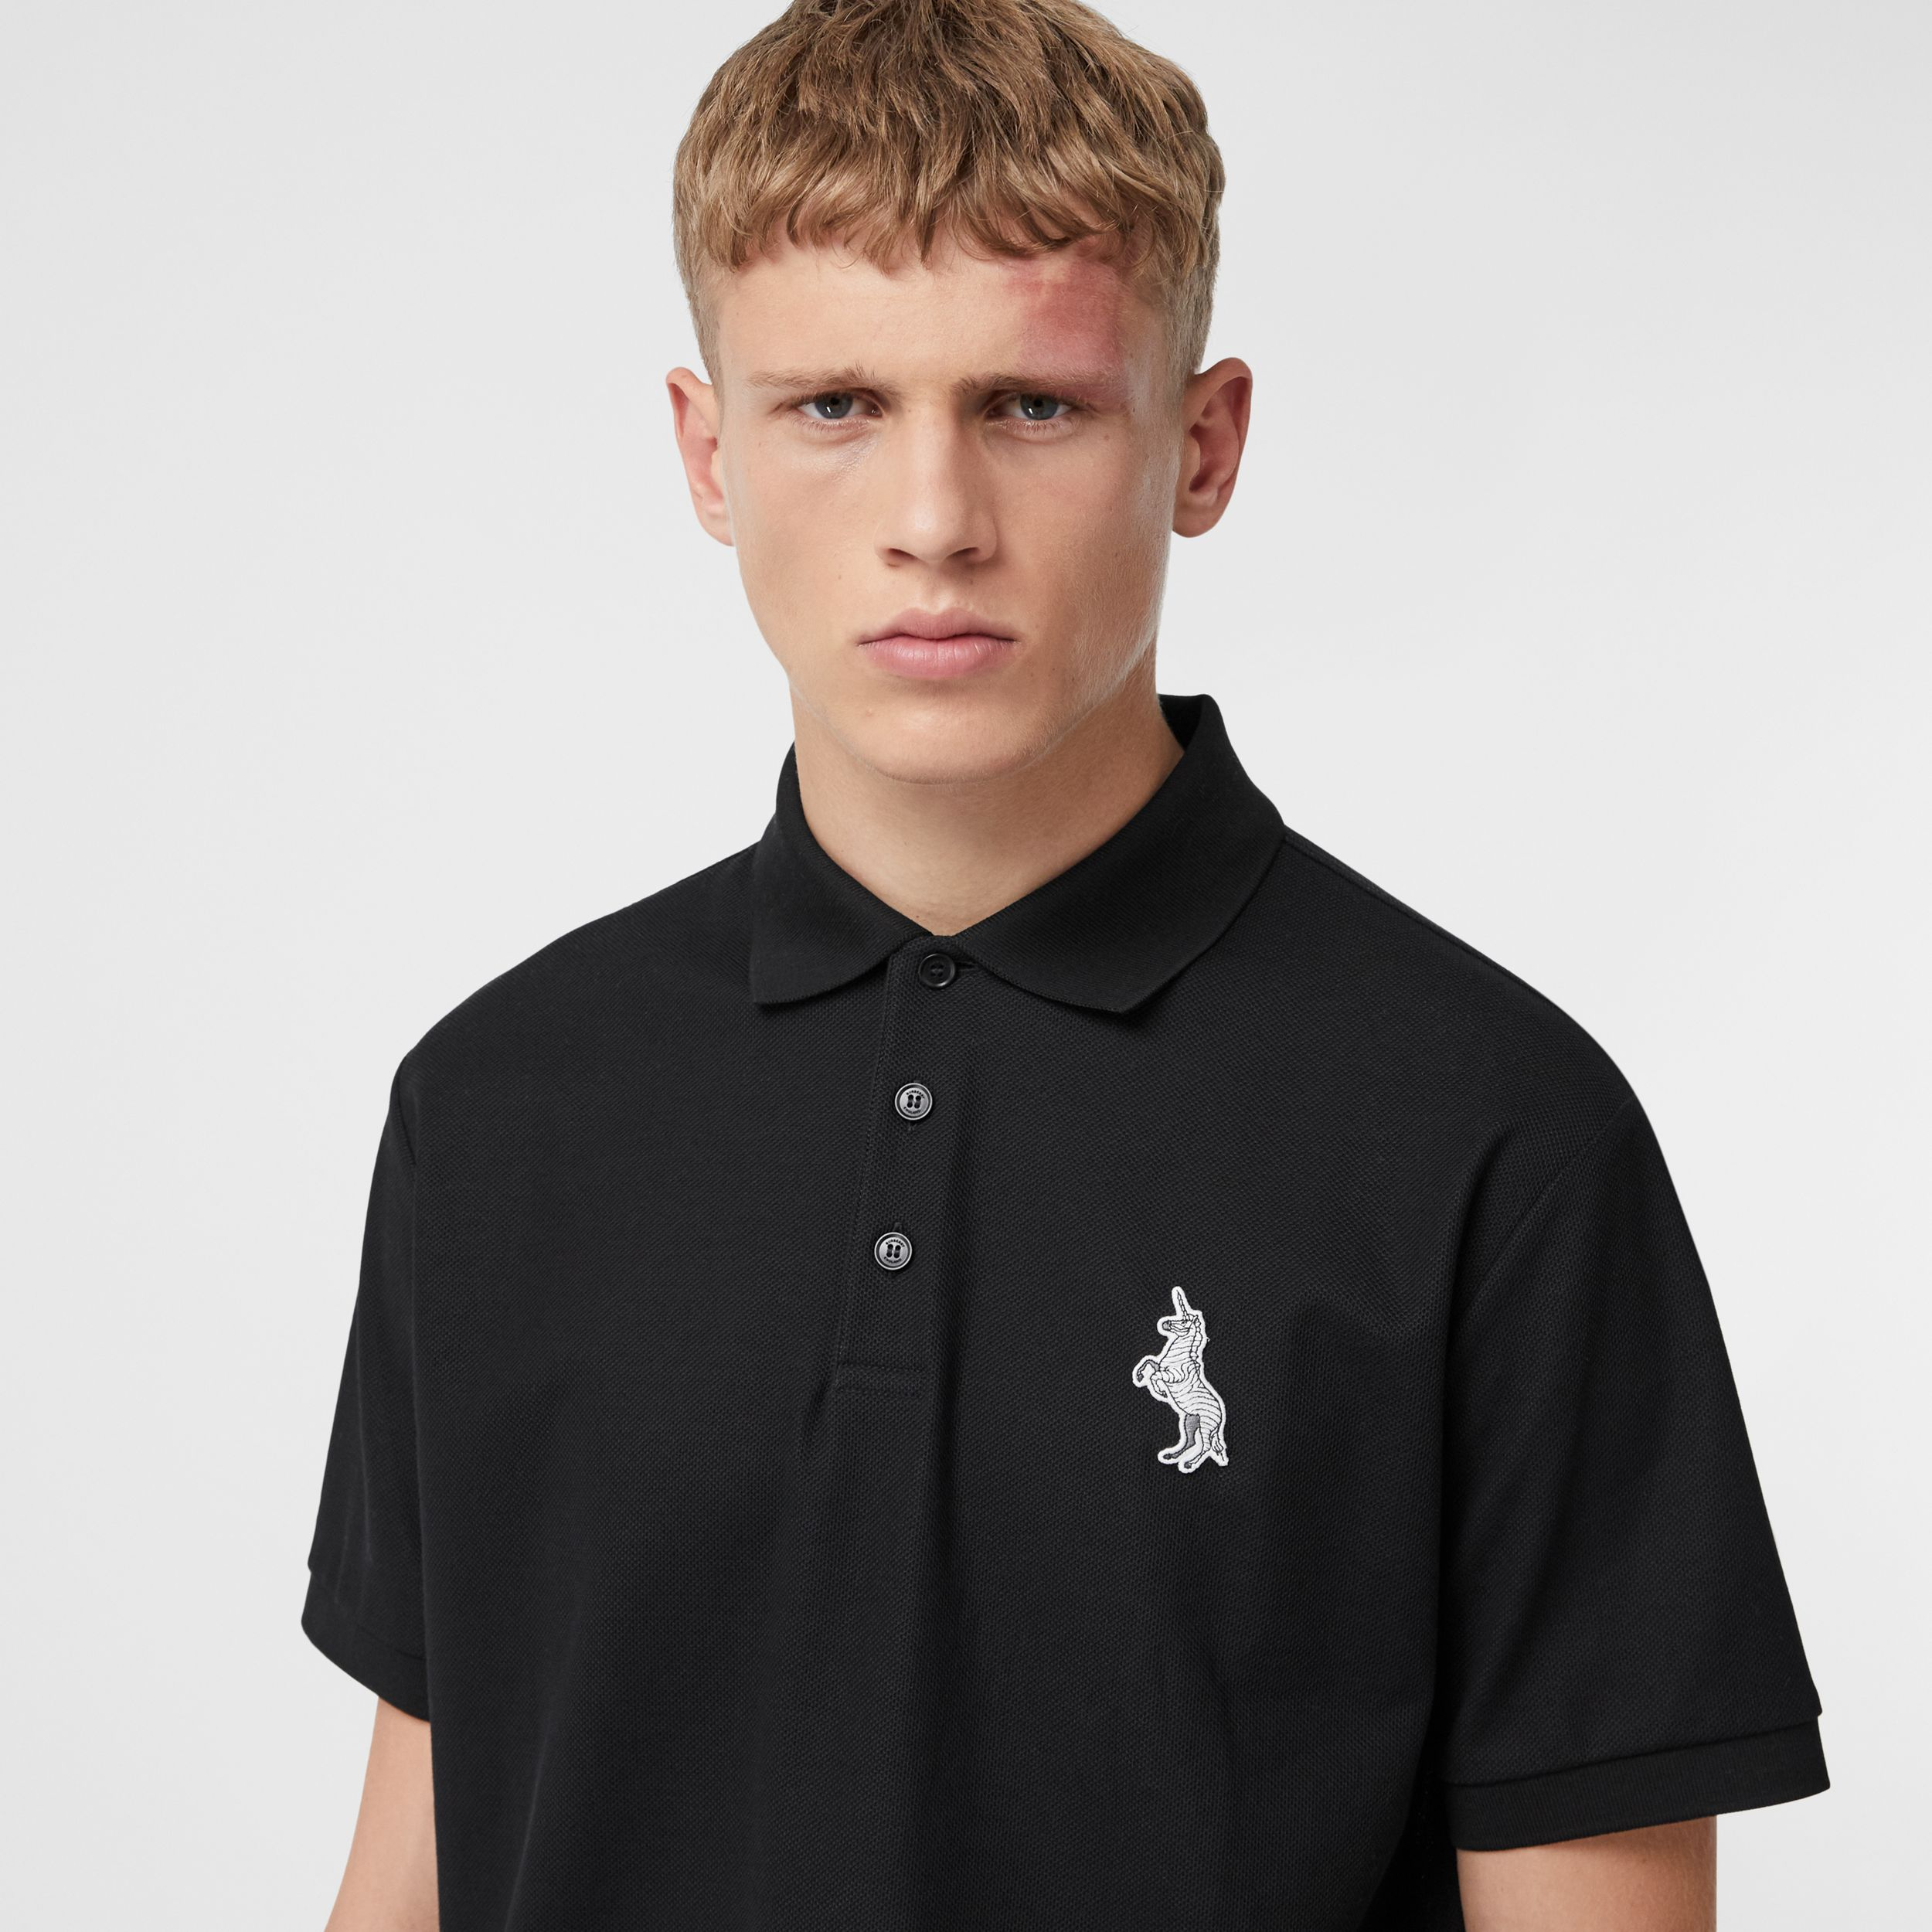 Zebra Appliqué Cotton Piqué Polo Shirt in Black - Men | Burberry - 2